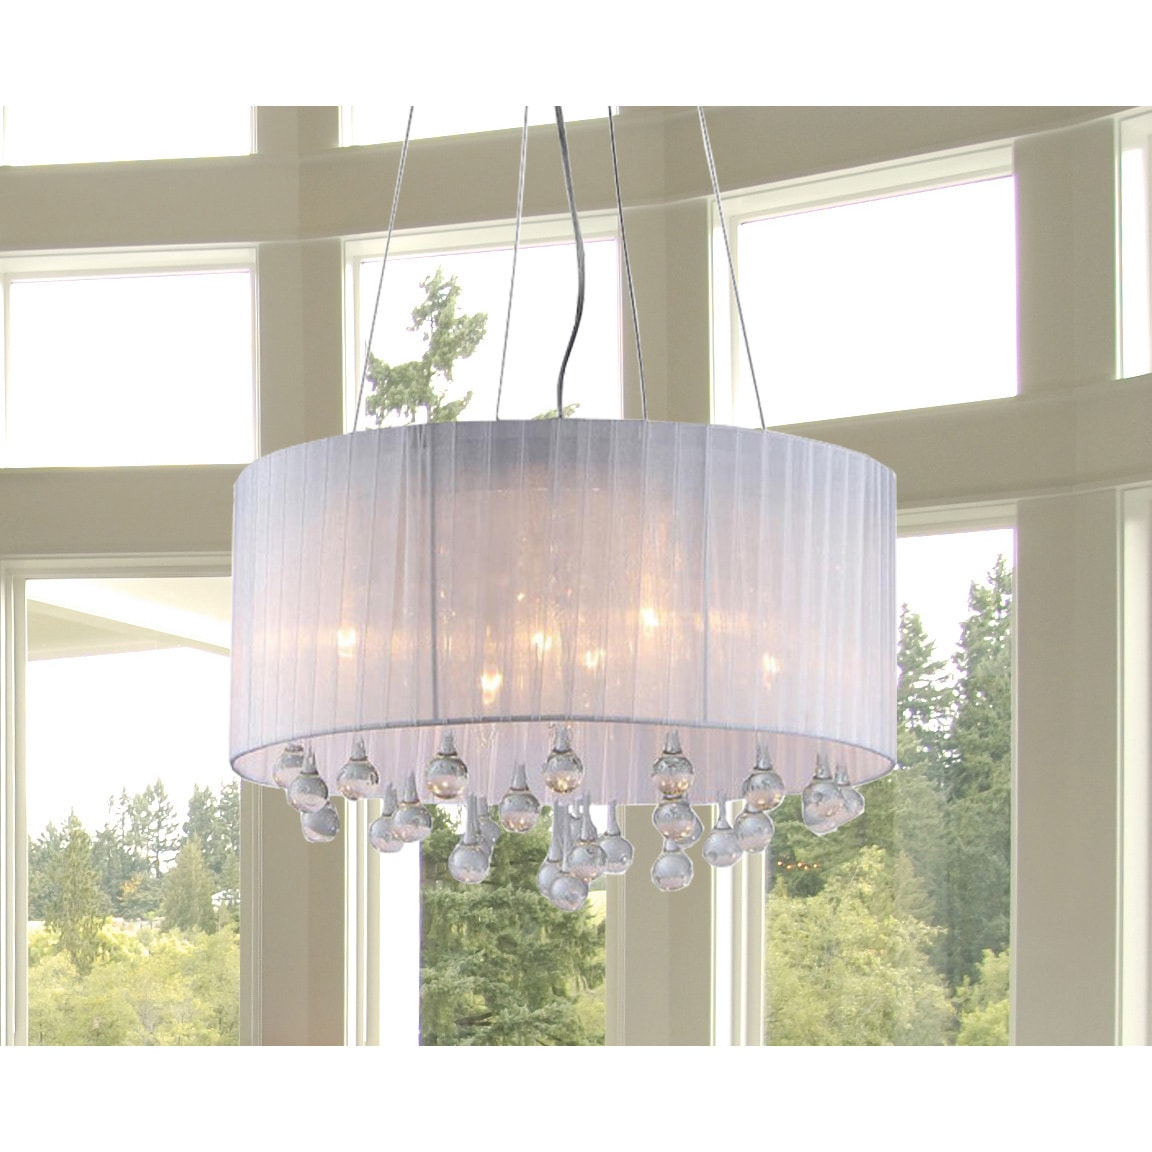 Spherical crystal chandelier free shipping today overstock spherical crystal chandelier free shipping today overstock 15567609 arubaitofo Image collections